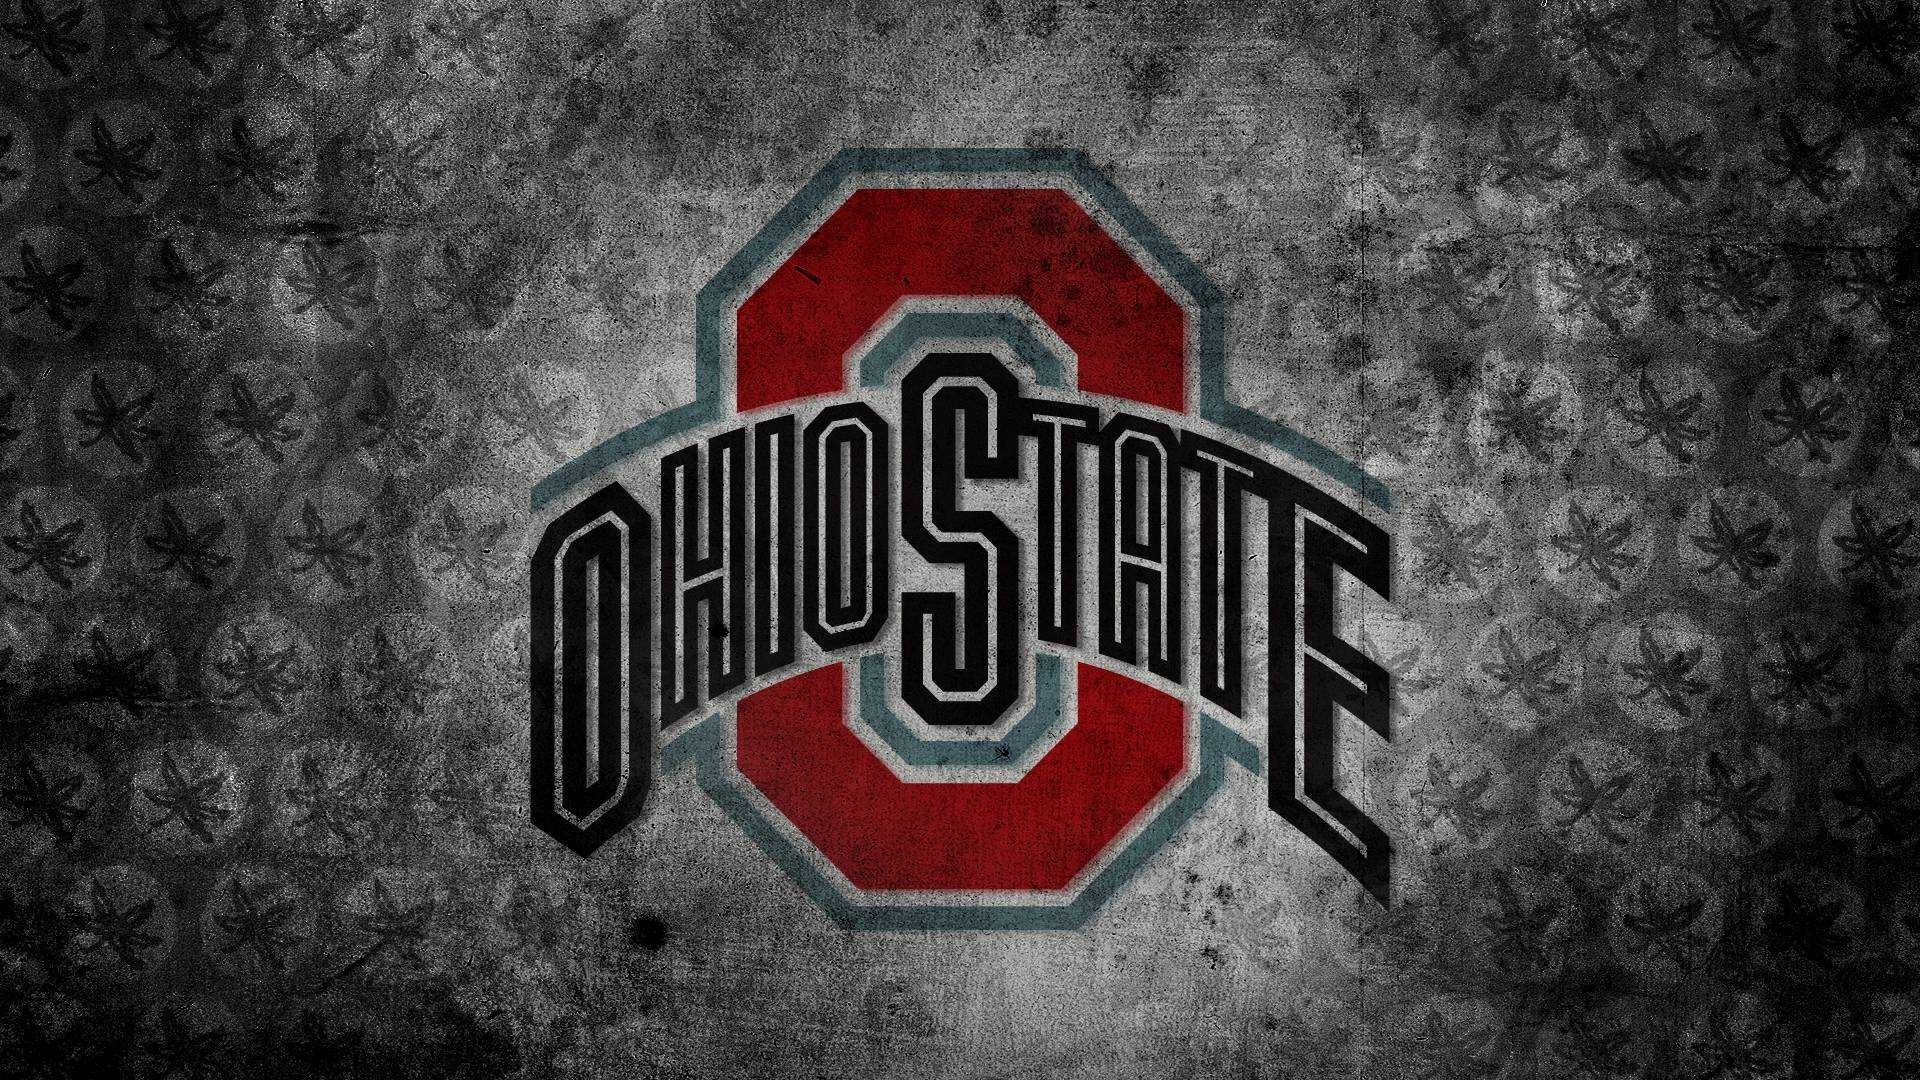 ohio state buckeyes wallpaper computer screen 4k desktop football of